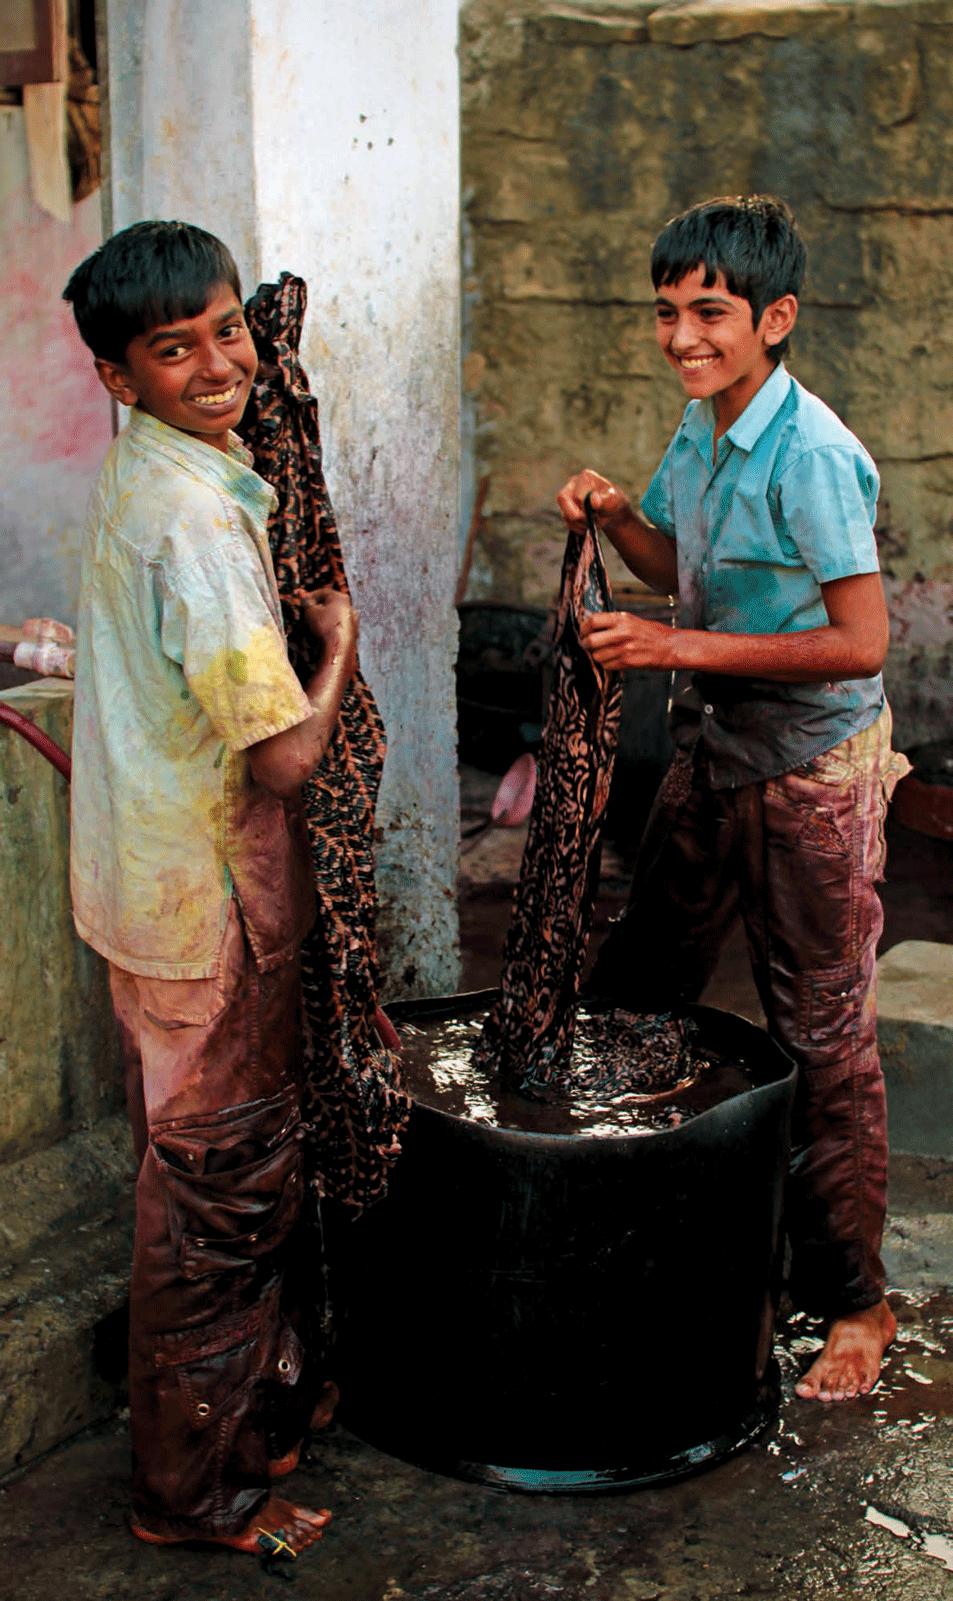 Children learn the art of dyeing when they are very young